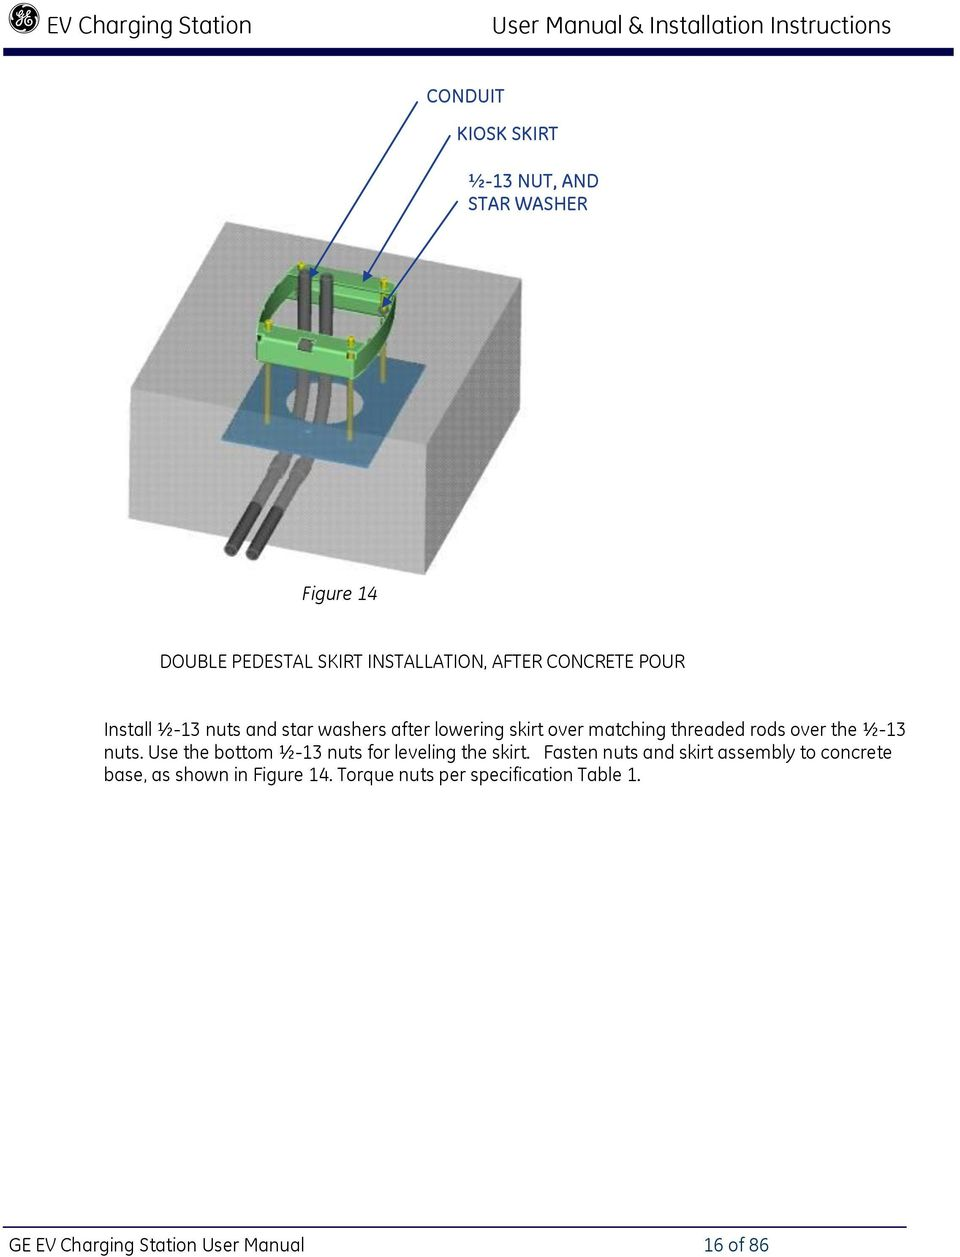 hight resolution of ge ev charging station user manual 16 of 86 threaded rods over the 13 nuts use the bottom 13 nuts